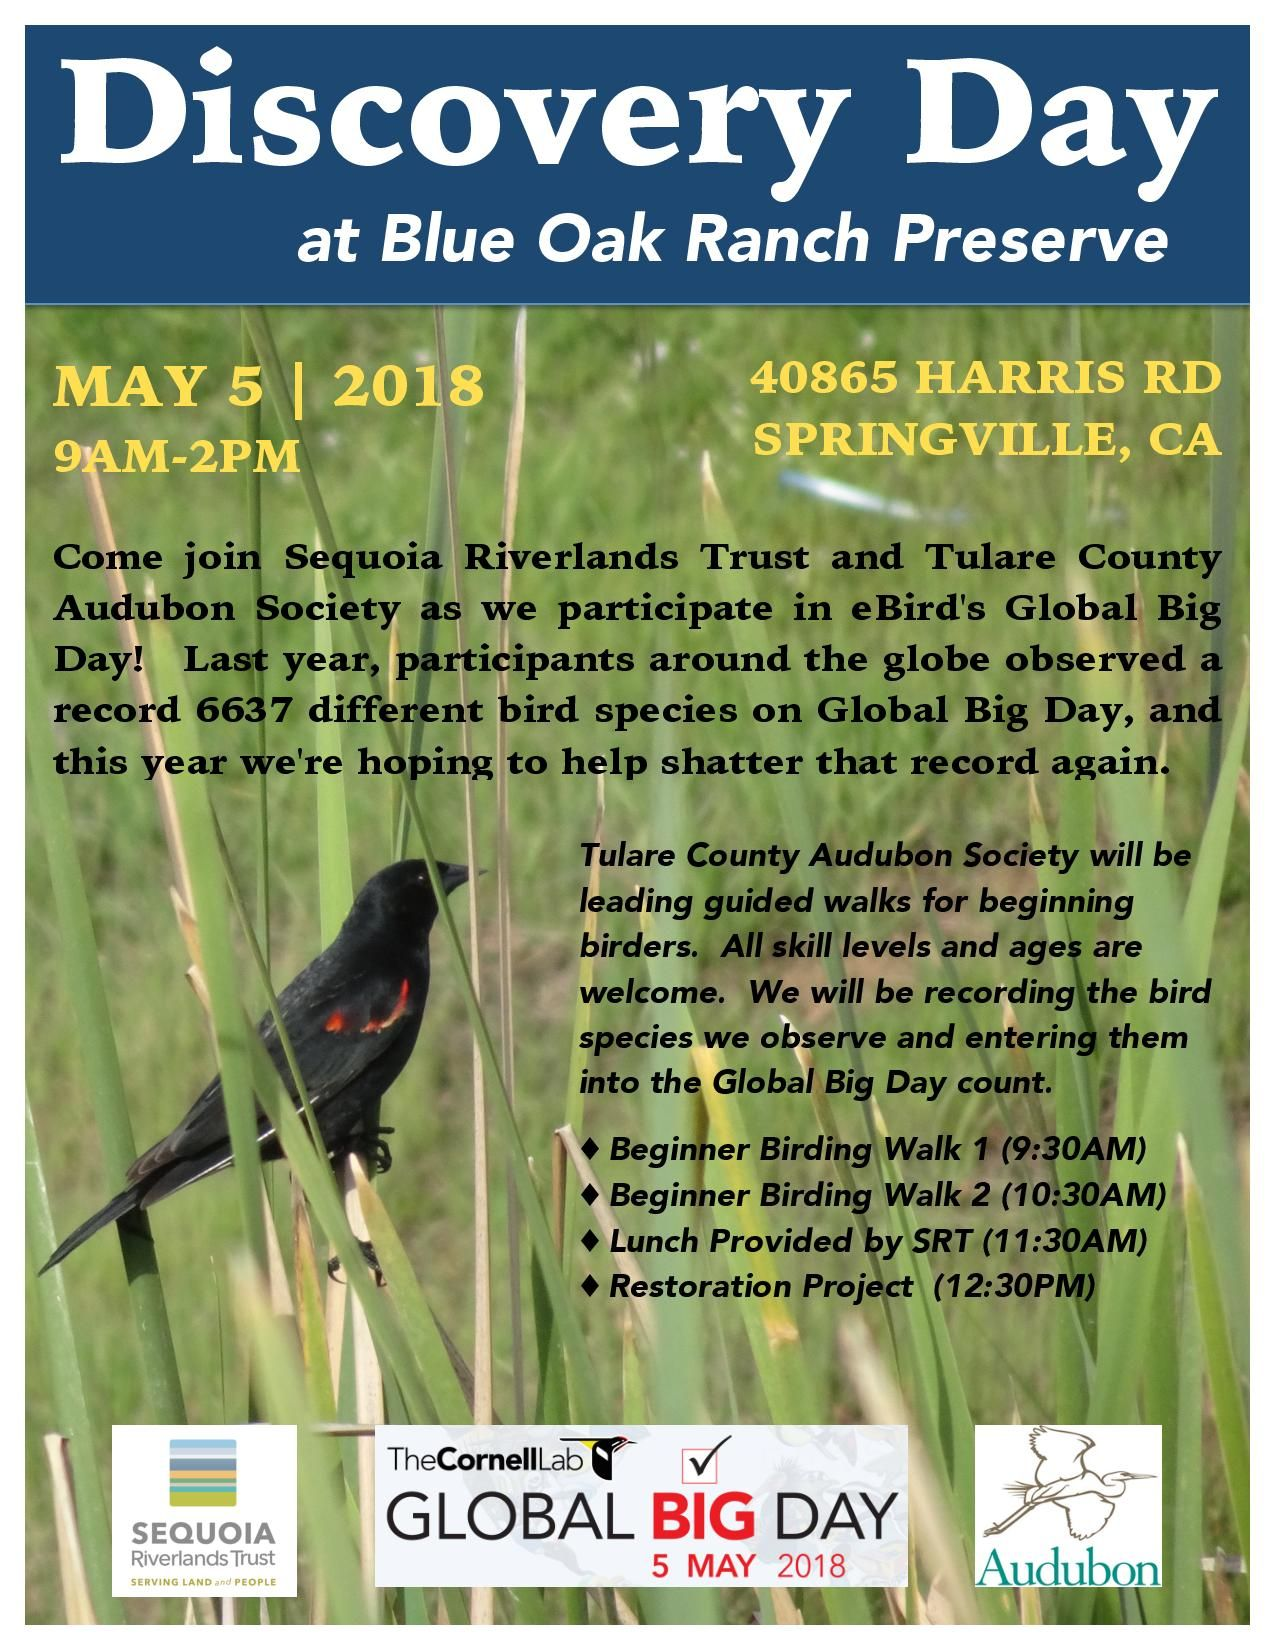 Birding at Blue Oak